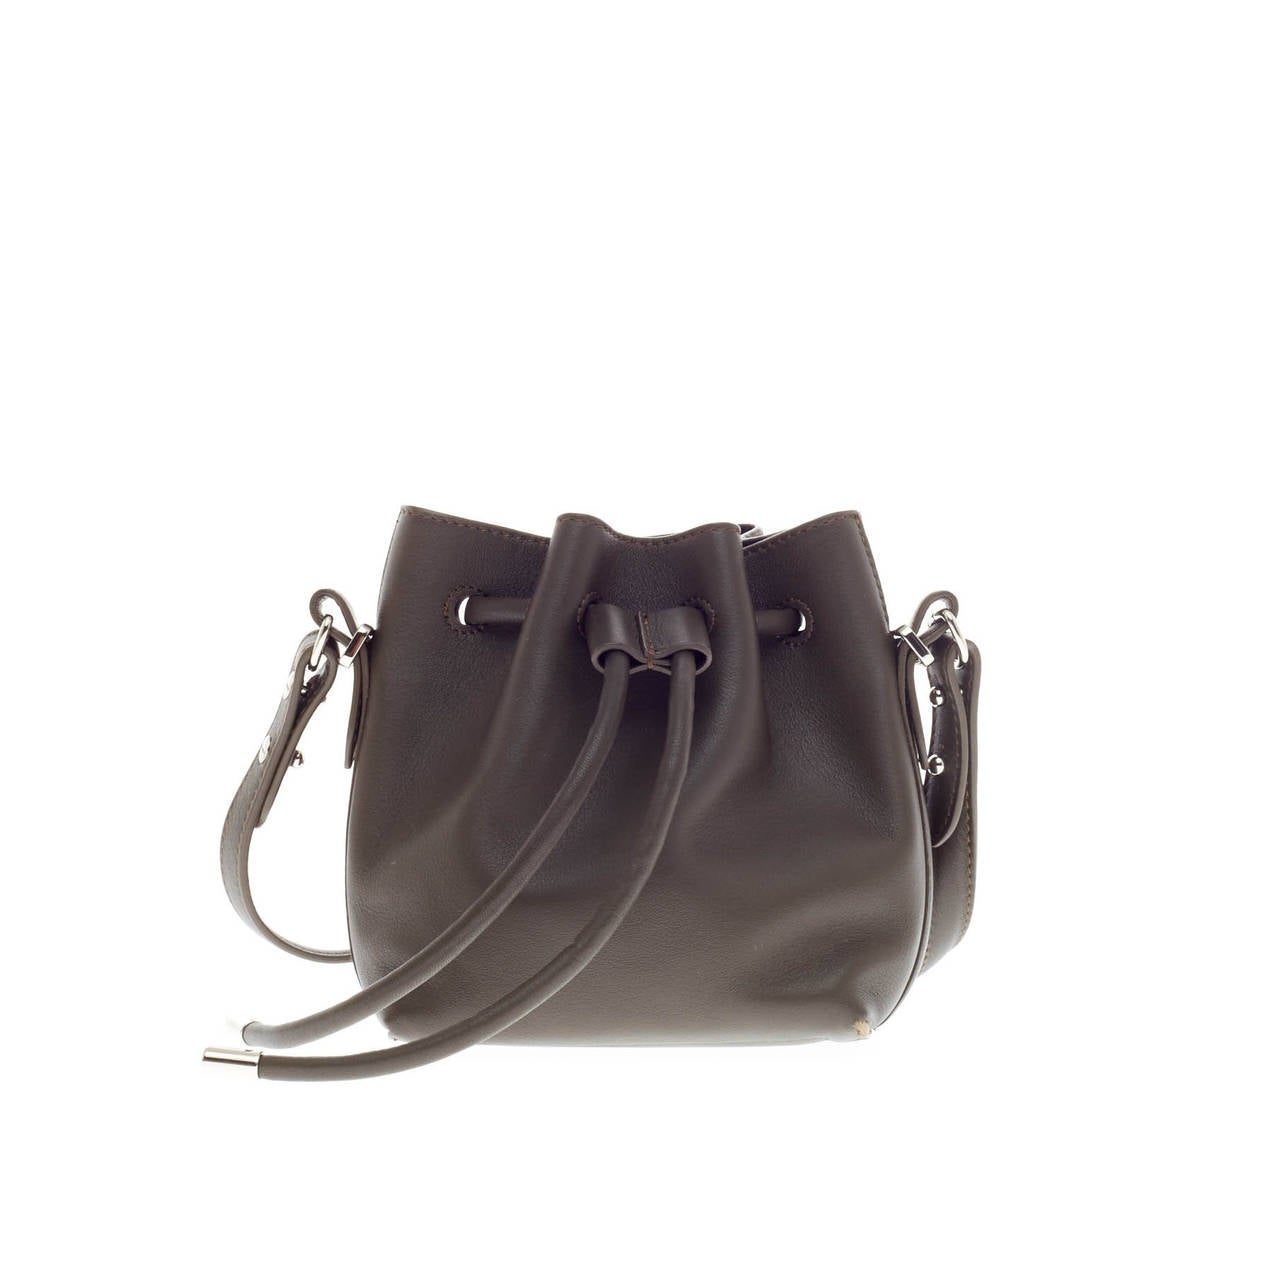 Proenza Schouler Bucket Bag Leather Tiny For Sale